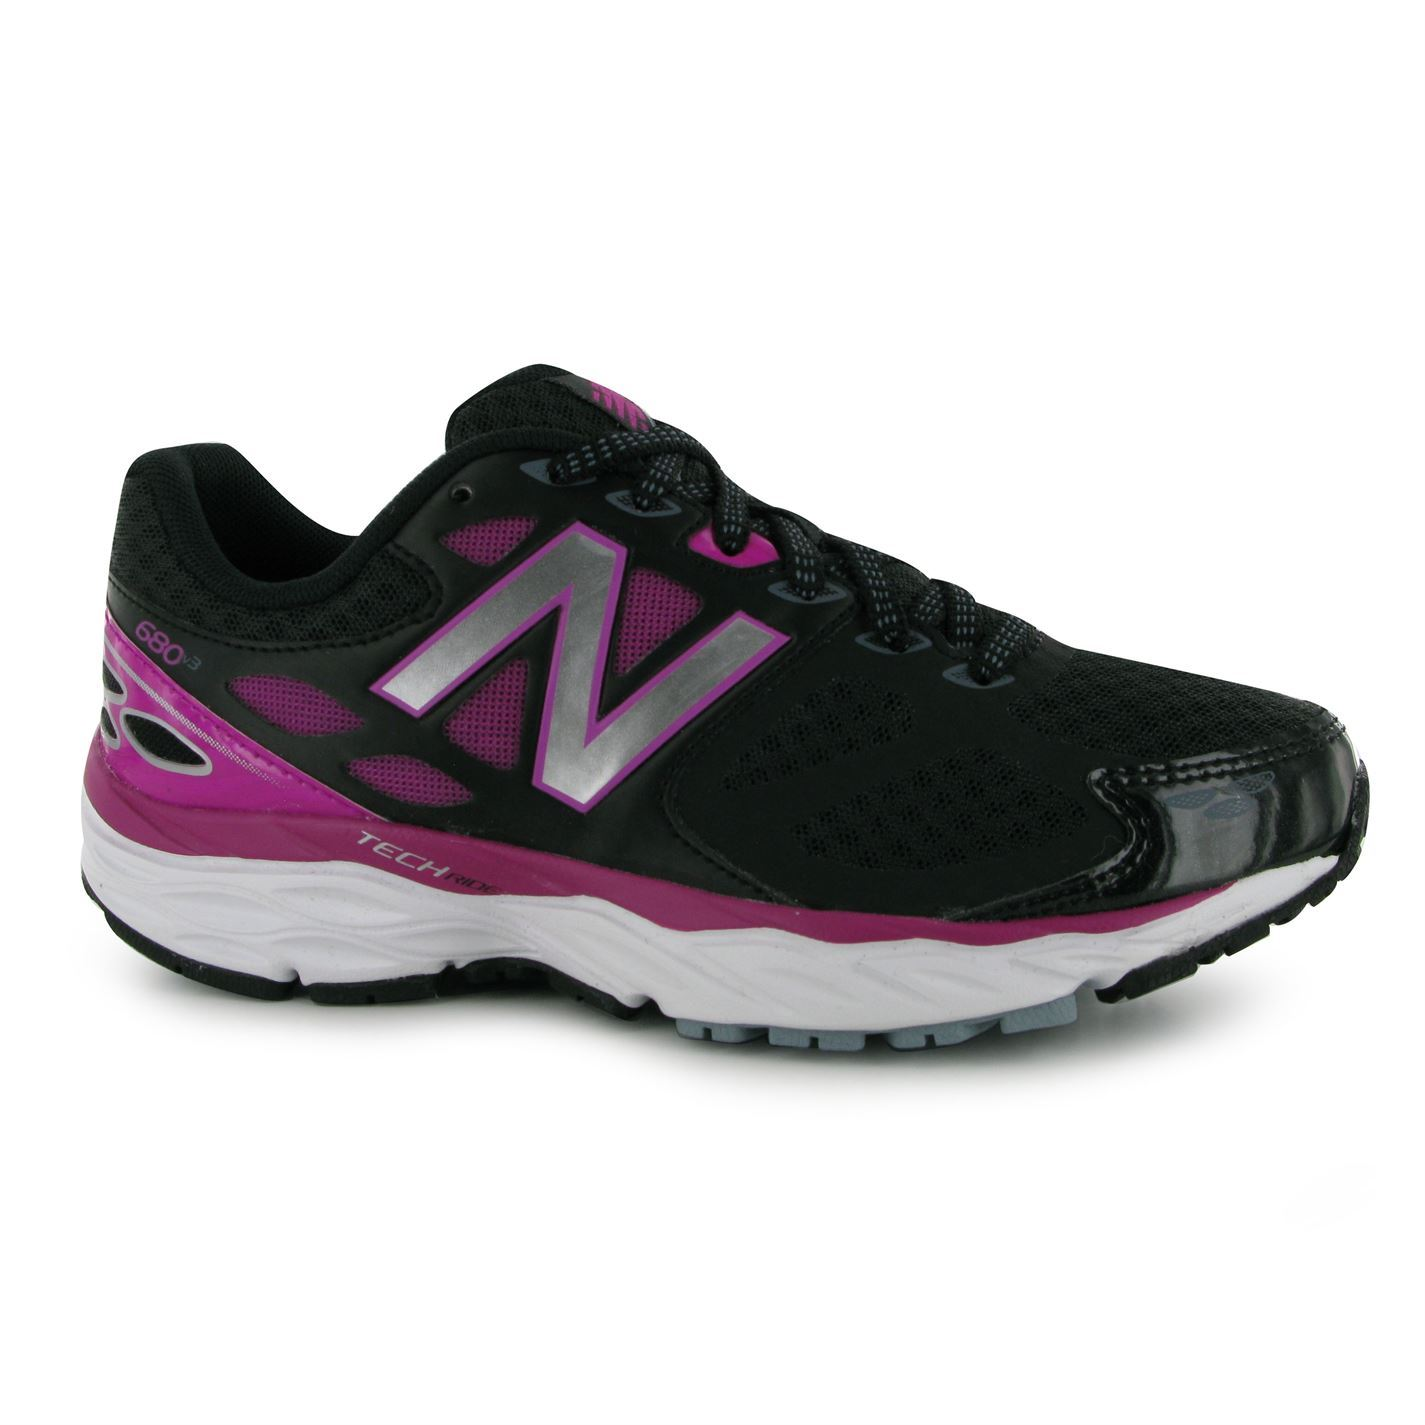 New Balance Womens Ladies W680v3 Running Shoes Lace Up ...